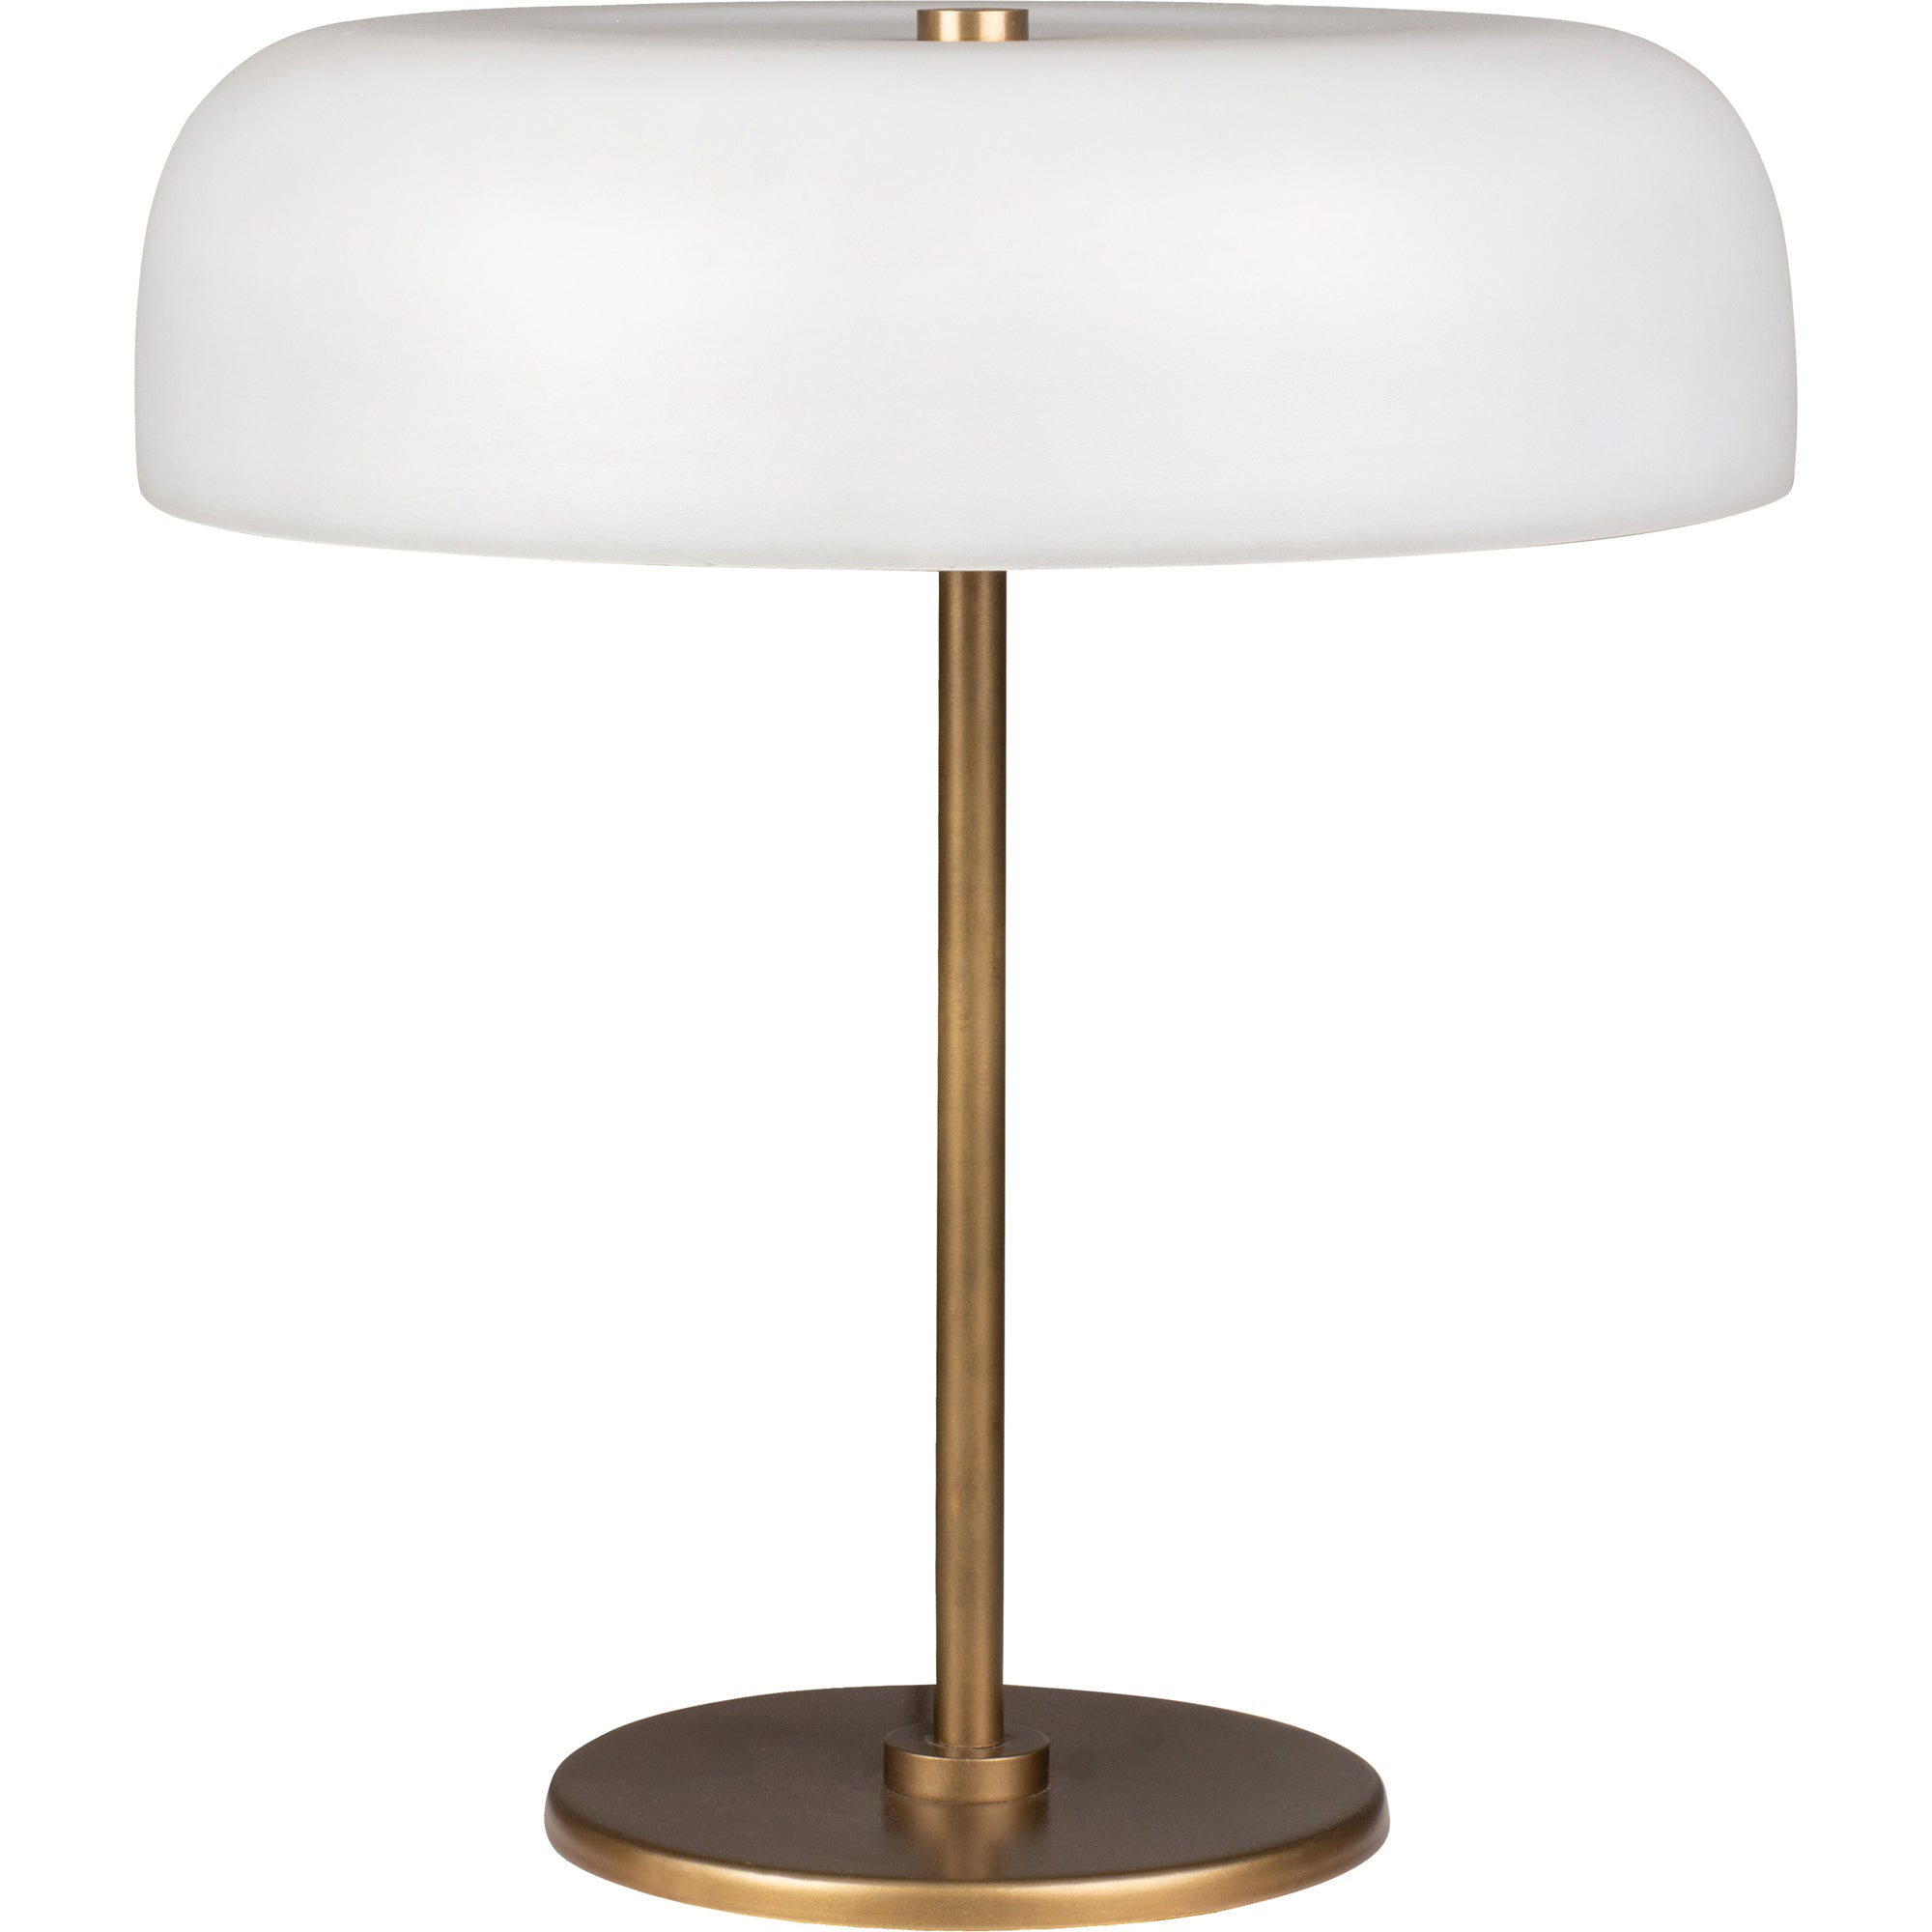 Marvin Brass Table Lamp - Rug & Weave